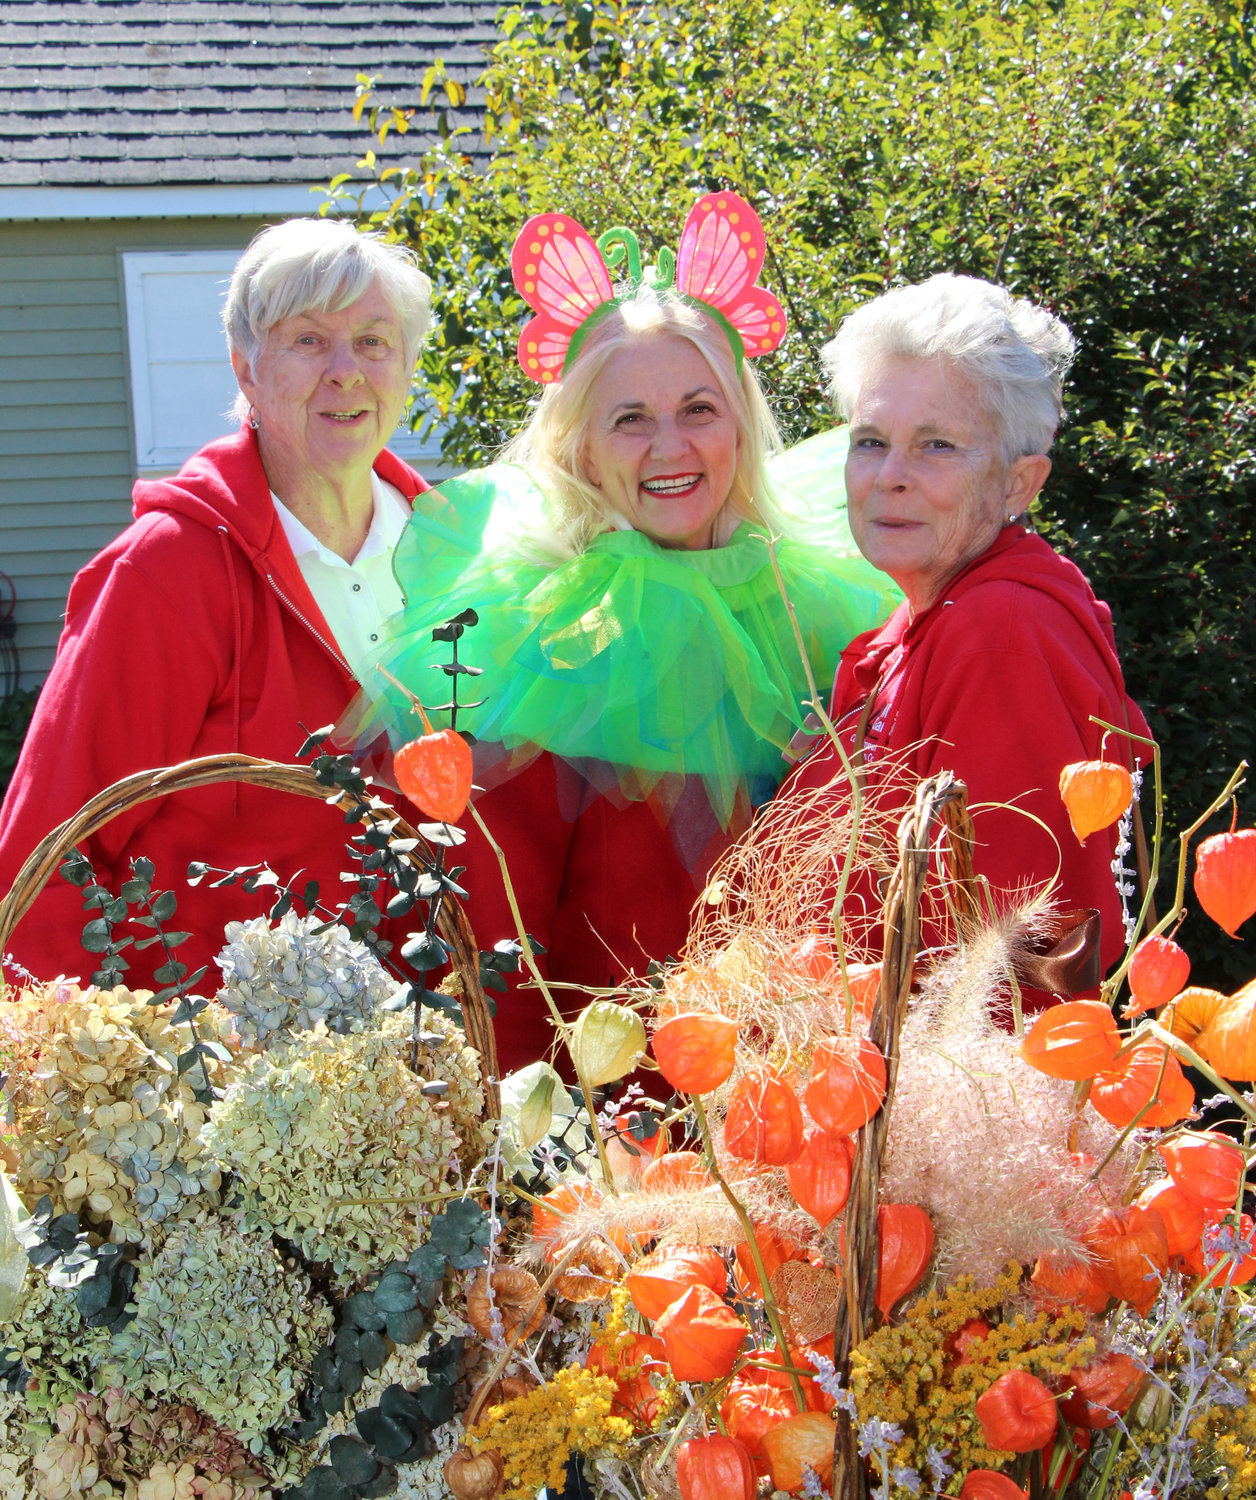 Nonie Muellers, left, Patricia Voll and Roellyn Armstrong are master gardeners at the Cornell Cooperative Extension of Nassau County, which operates the East Meadow Farm.